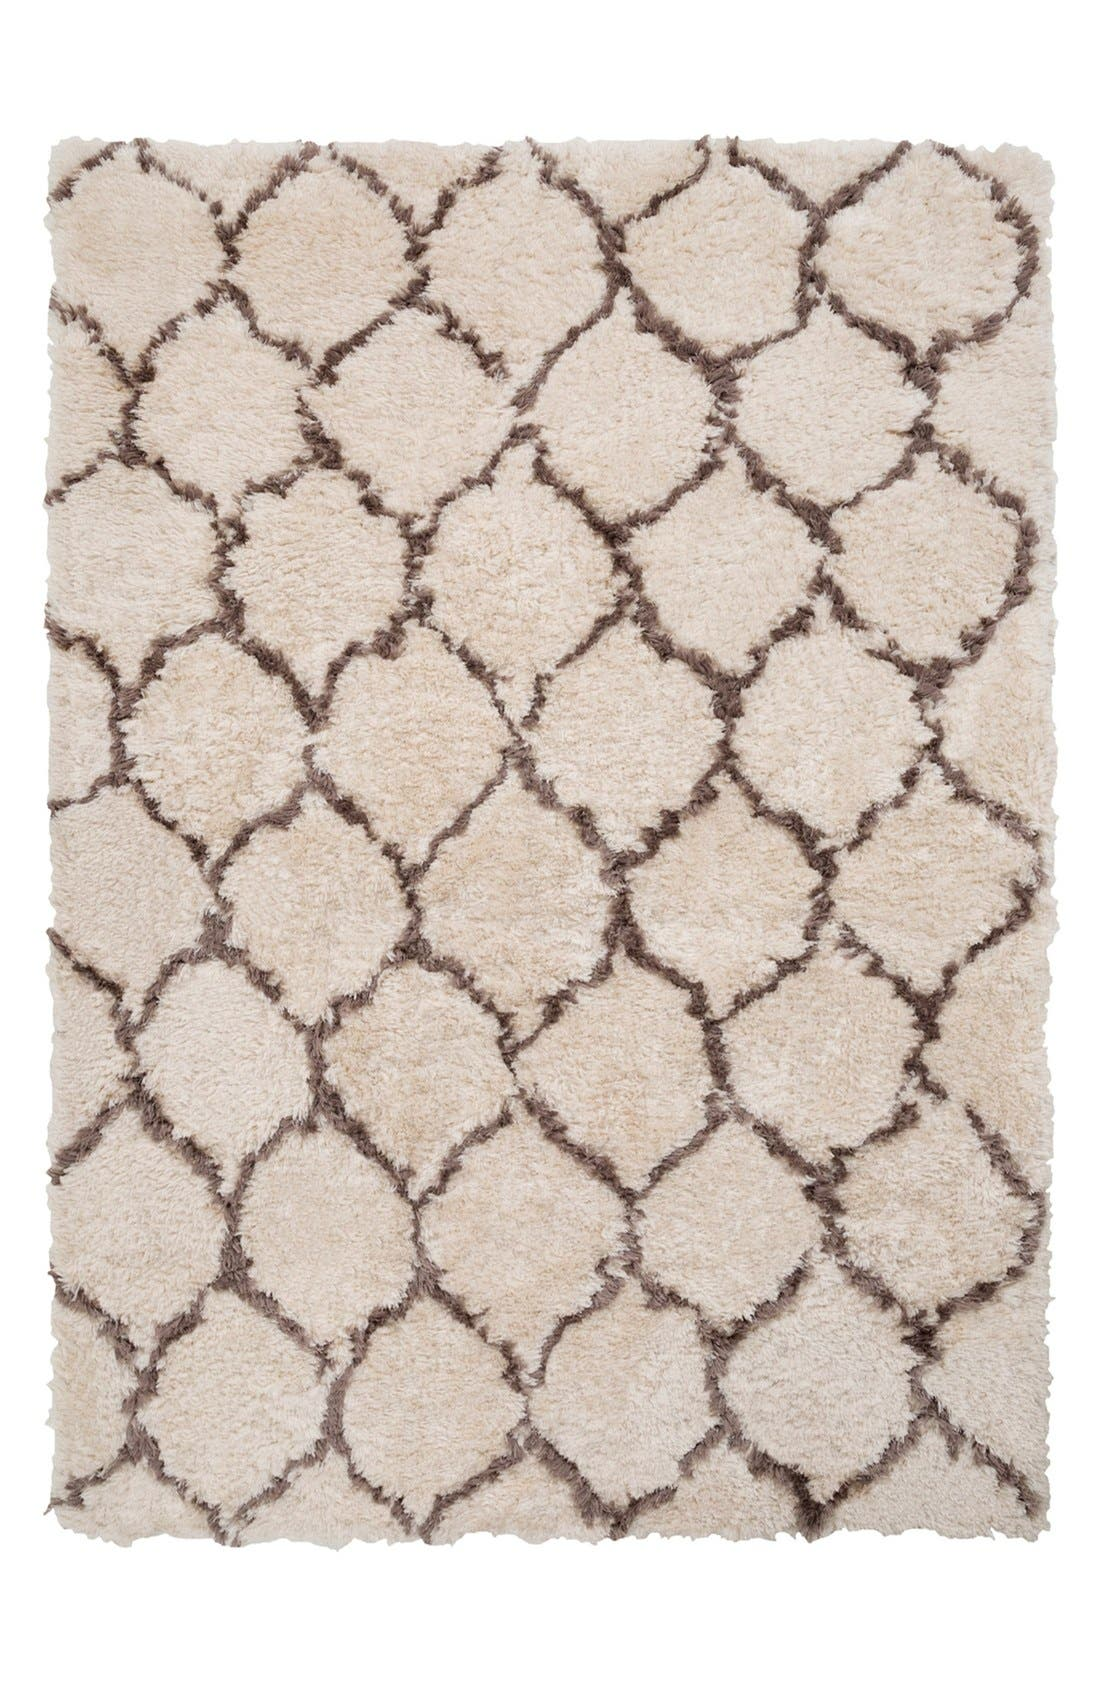 'Scout' Hand Tufted Rug,                         Main,                         color, 020